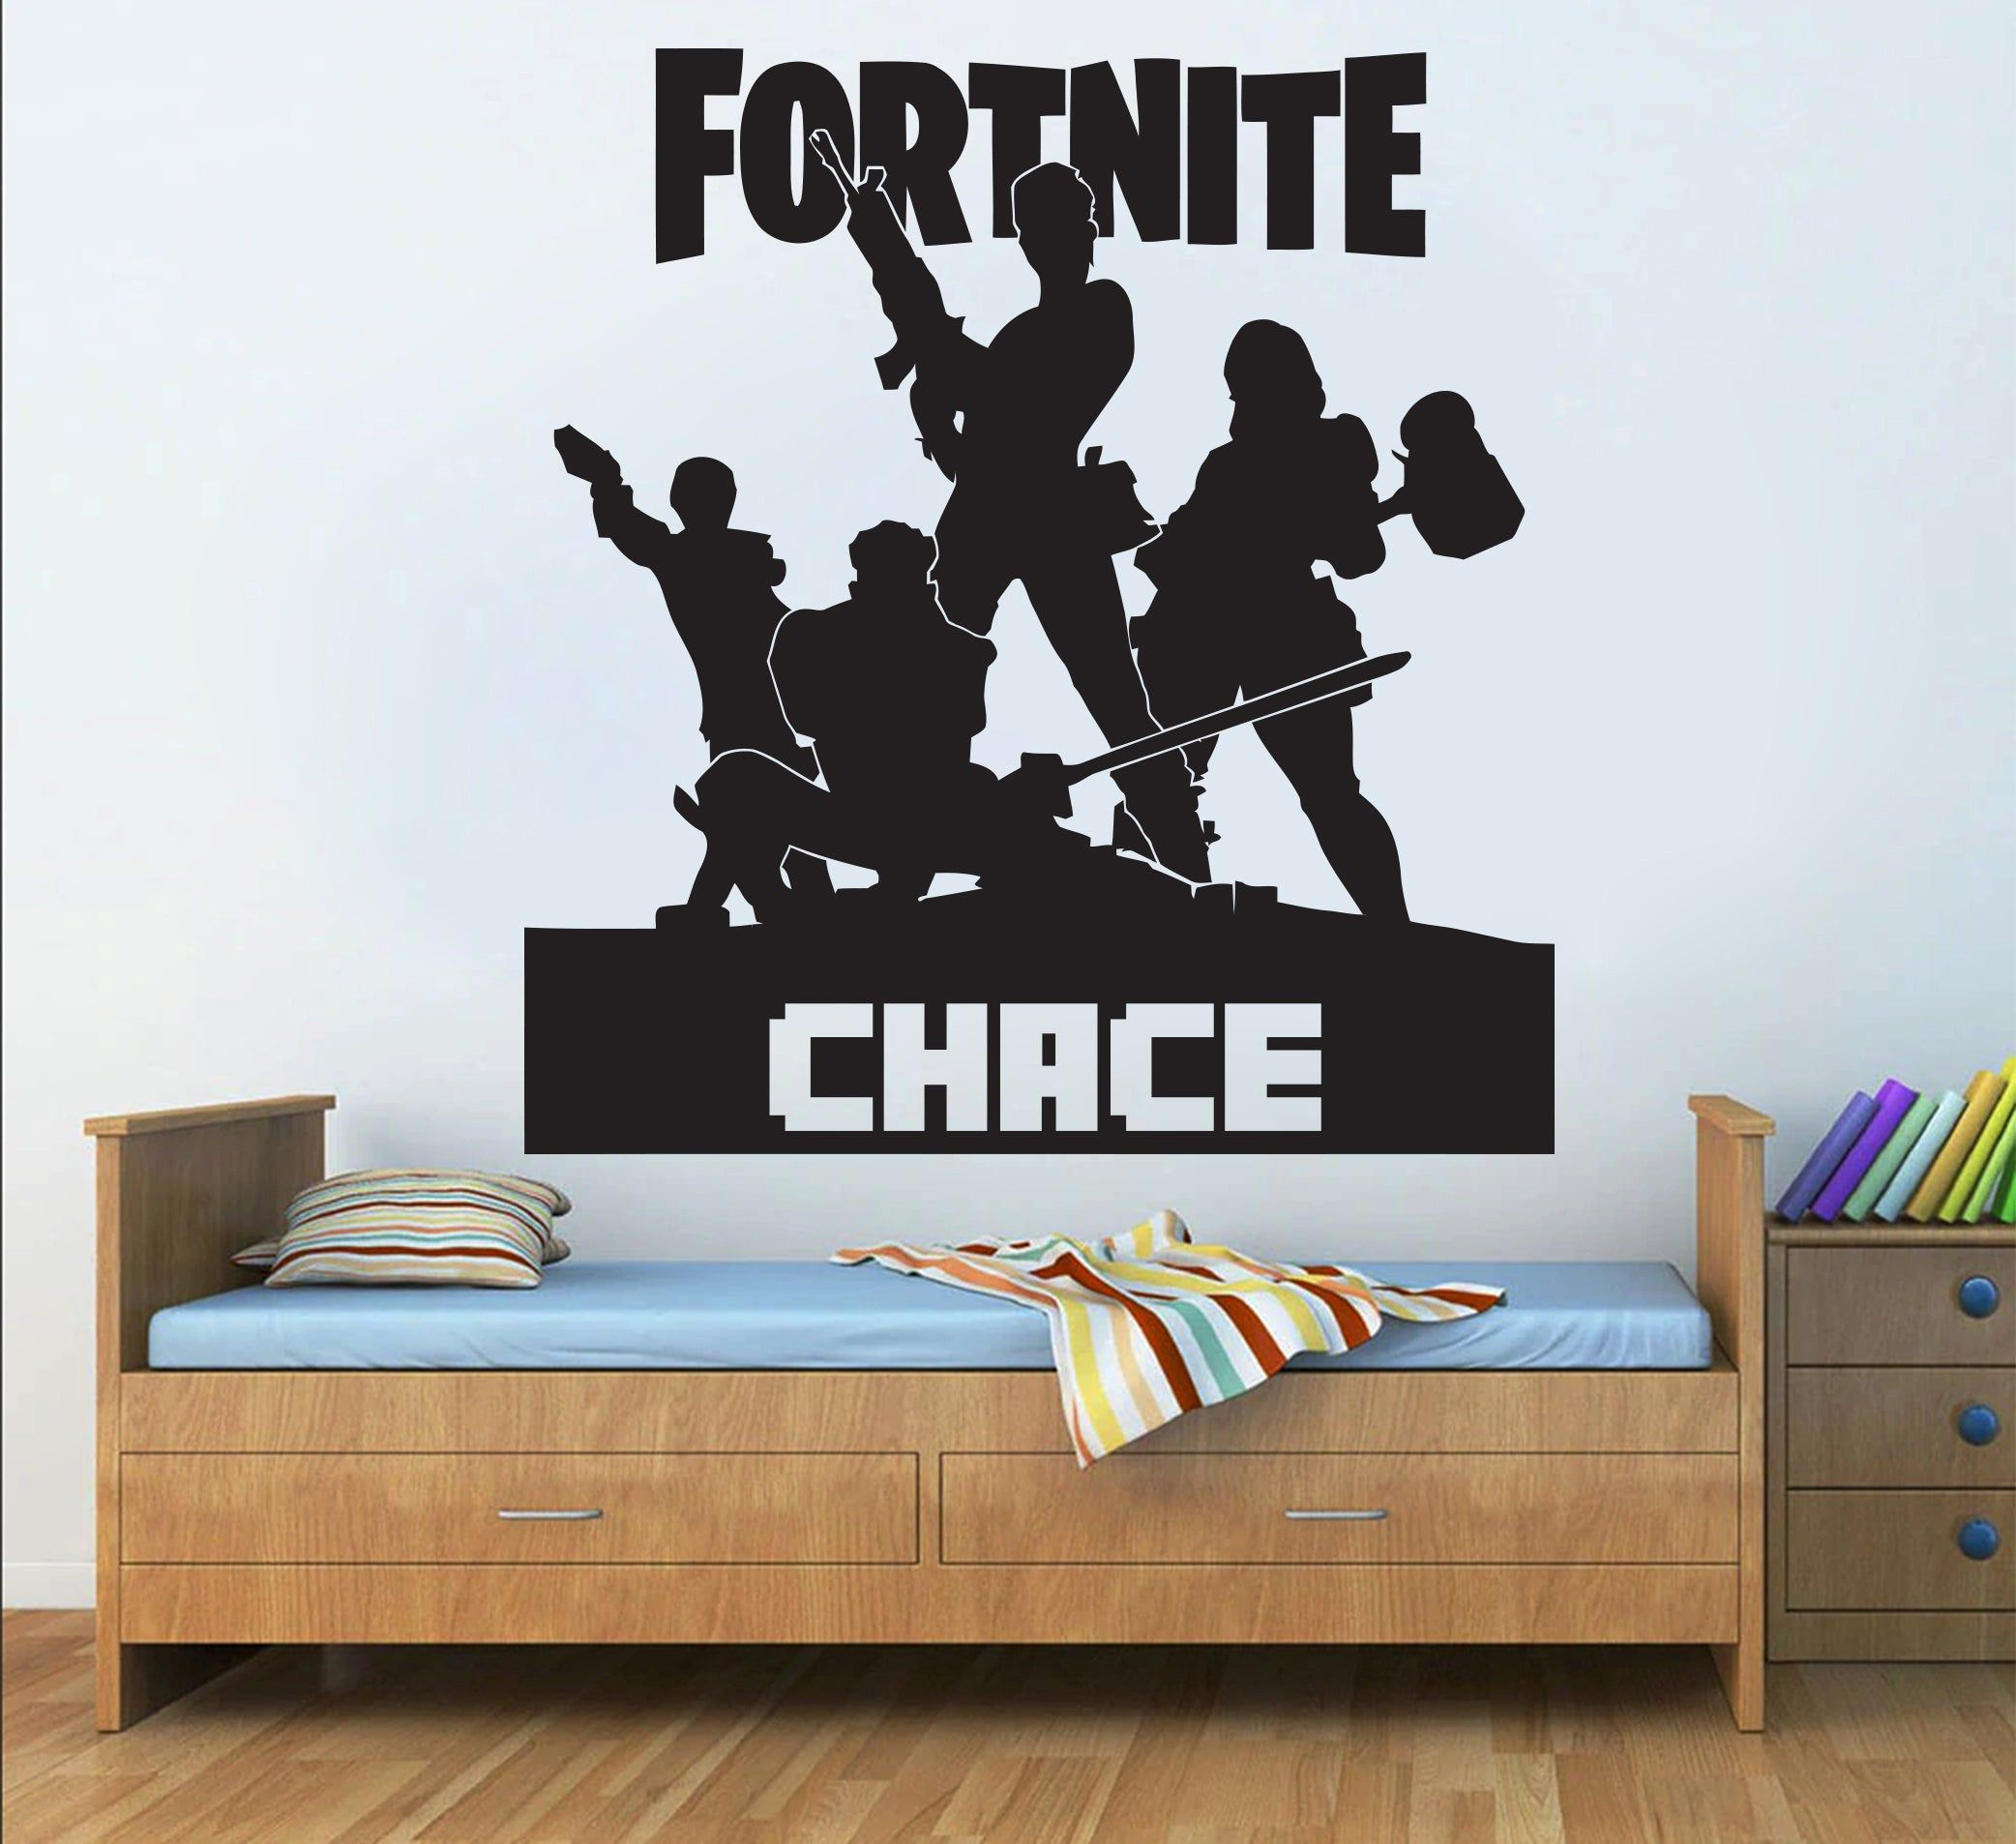 Gamer Wall Decal Vinyl Art Design Gamers World Wall Decor for Teen Kids Boys Bedroom Playroom Home Decoration Wallpaper Game Wall Stickers Murals